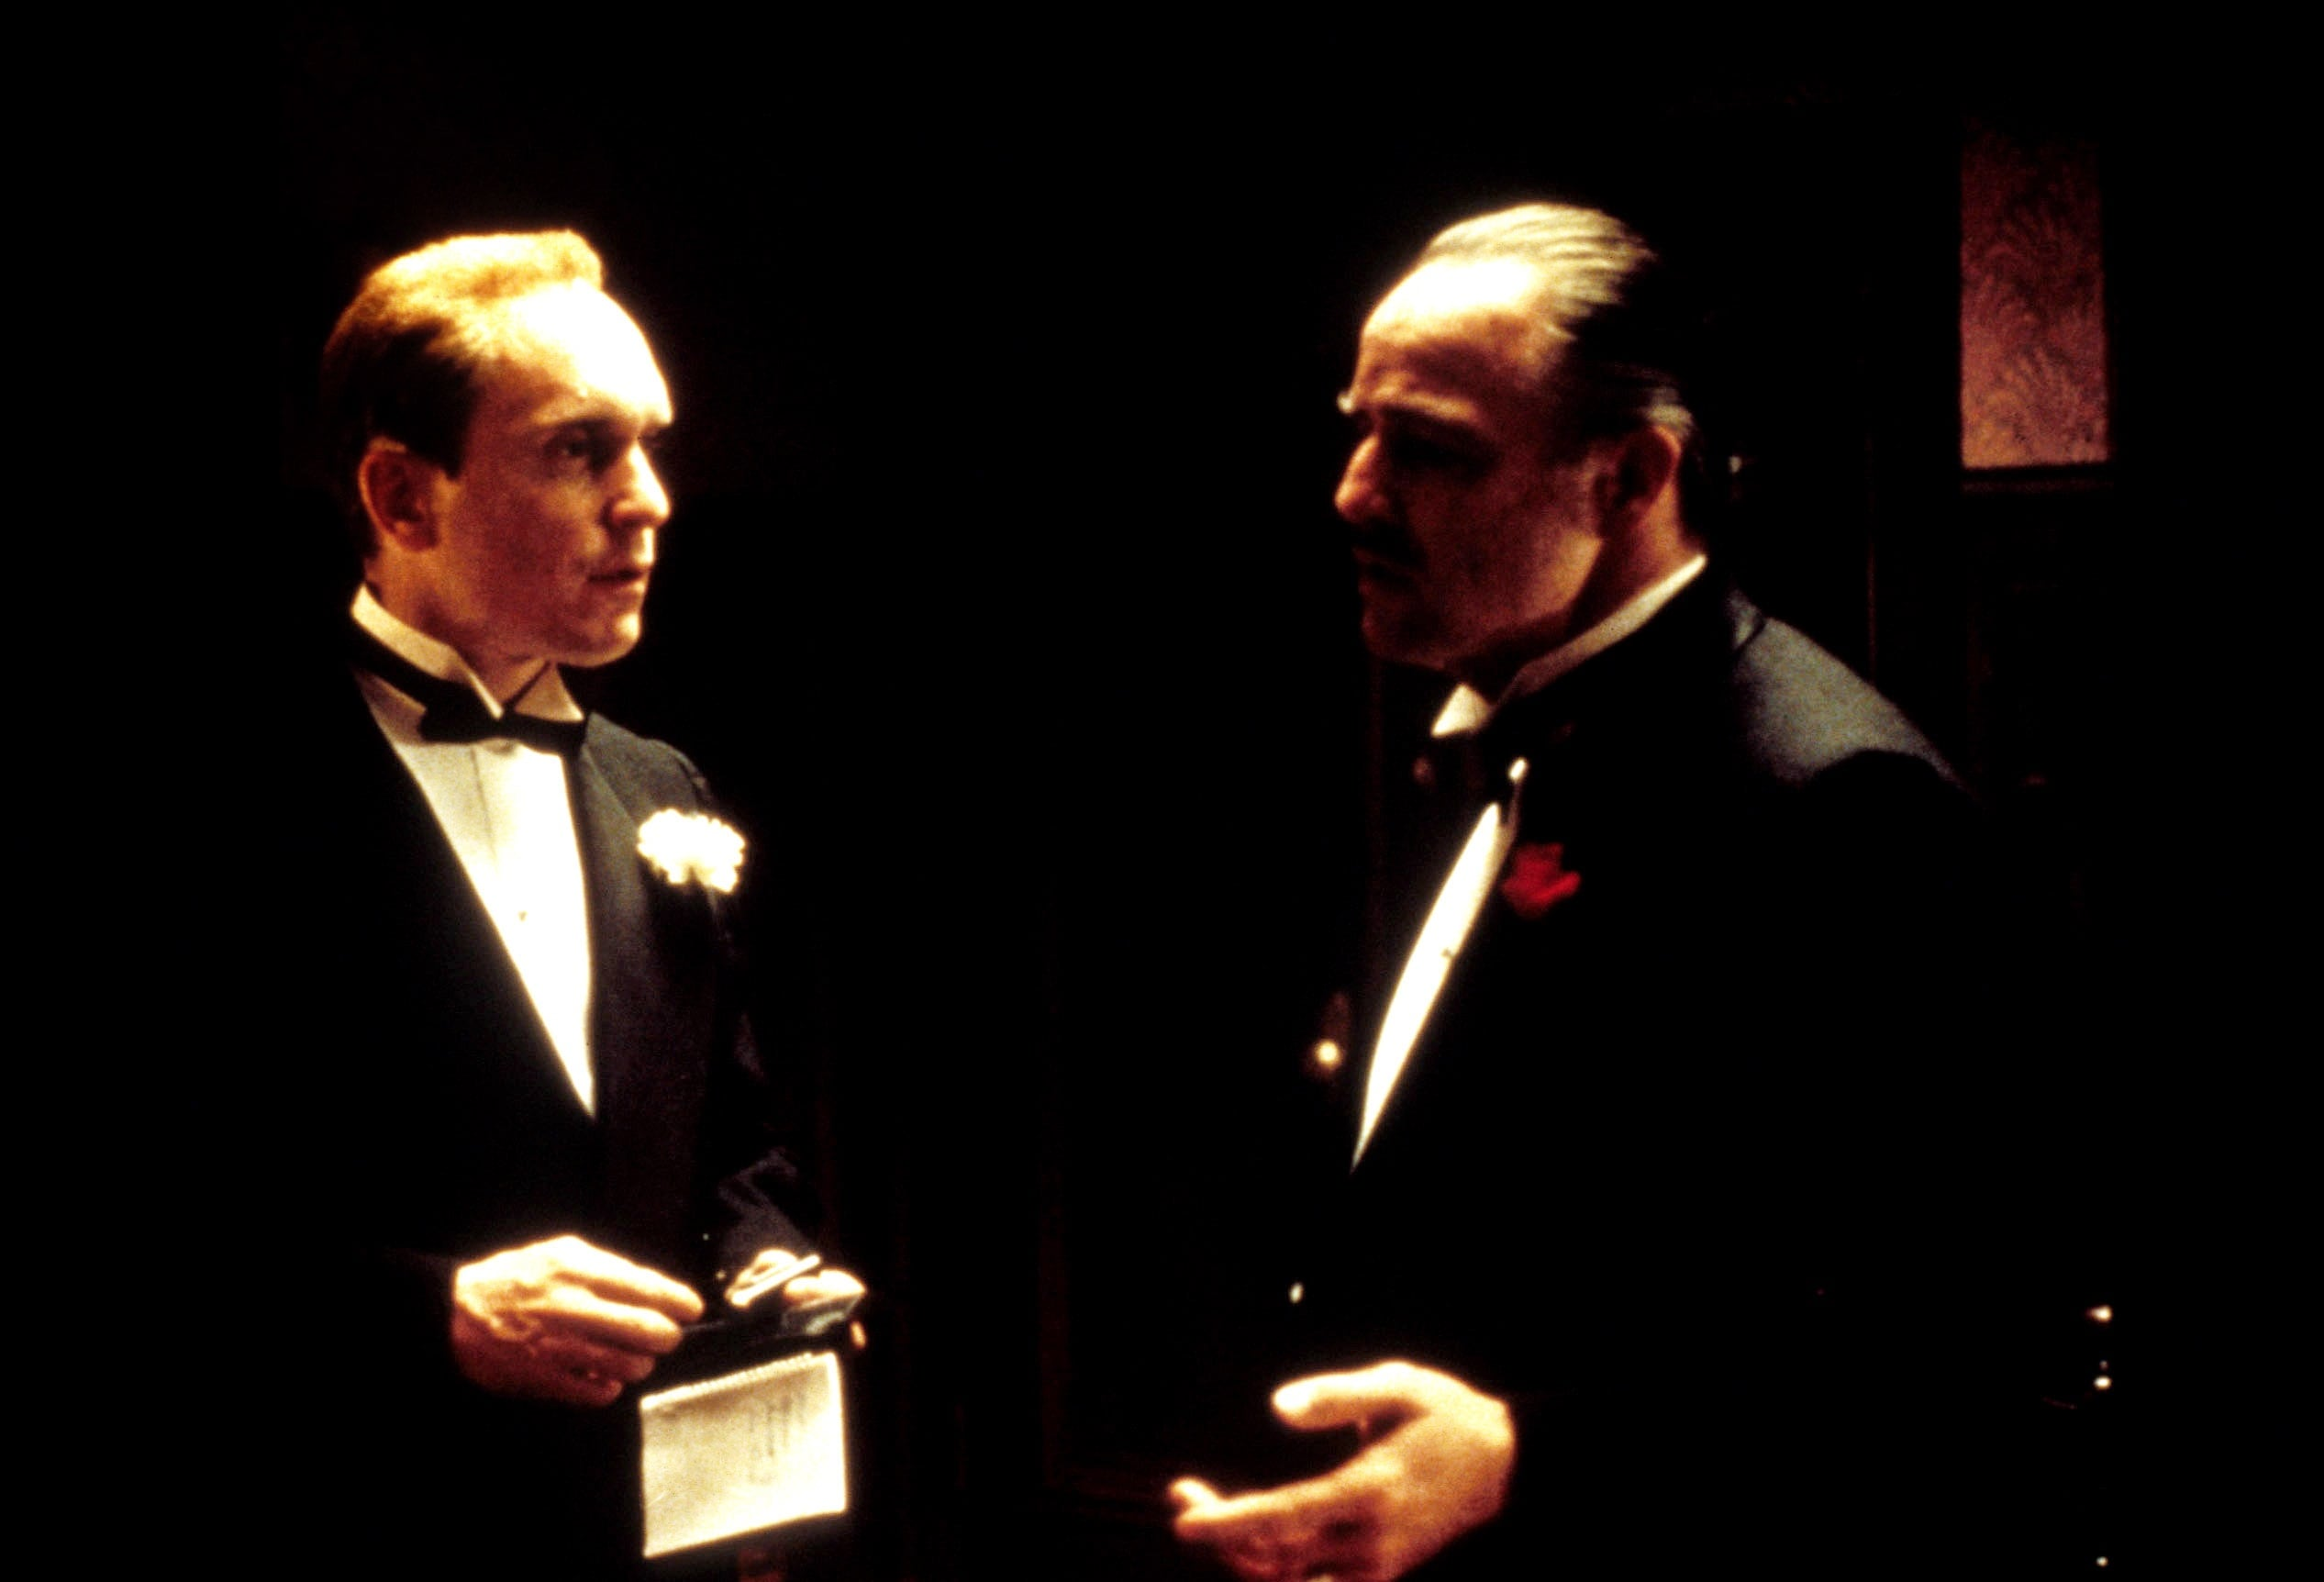 1557304592951_THE GODFATHER Robert Duvall 1972.jpg - Il Padrino 1972 con Robert Duvall